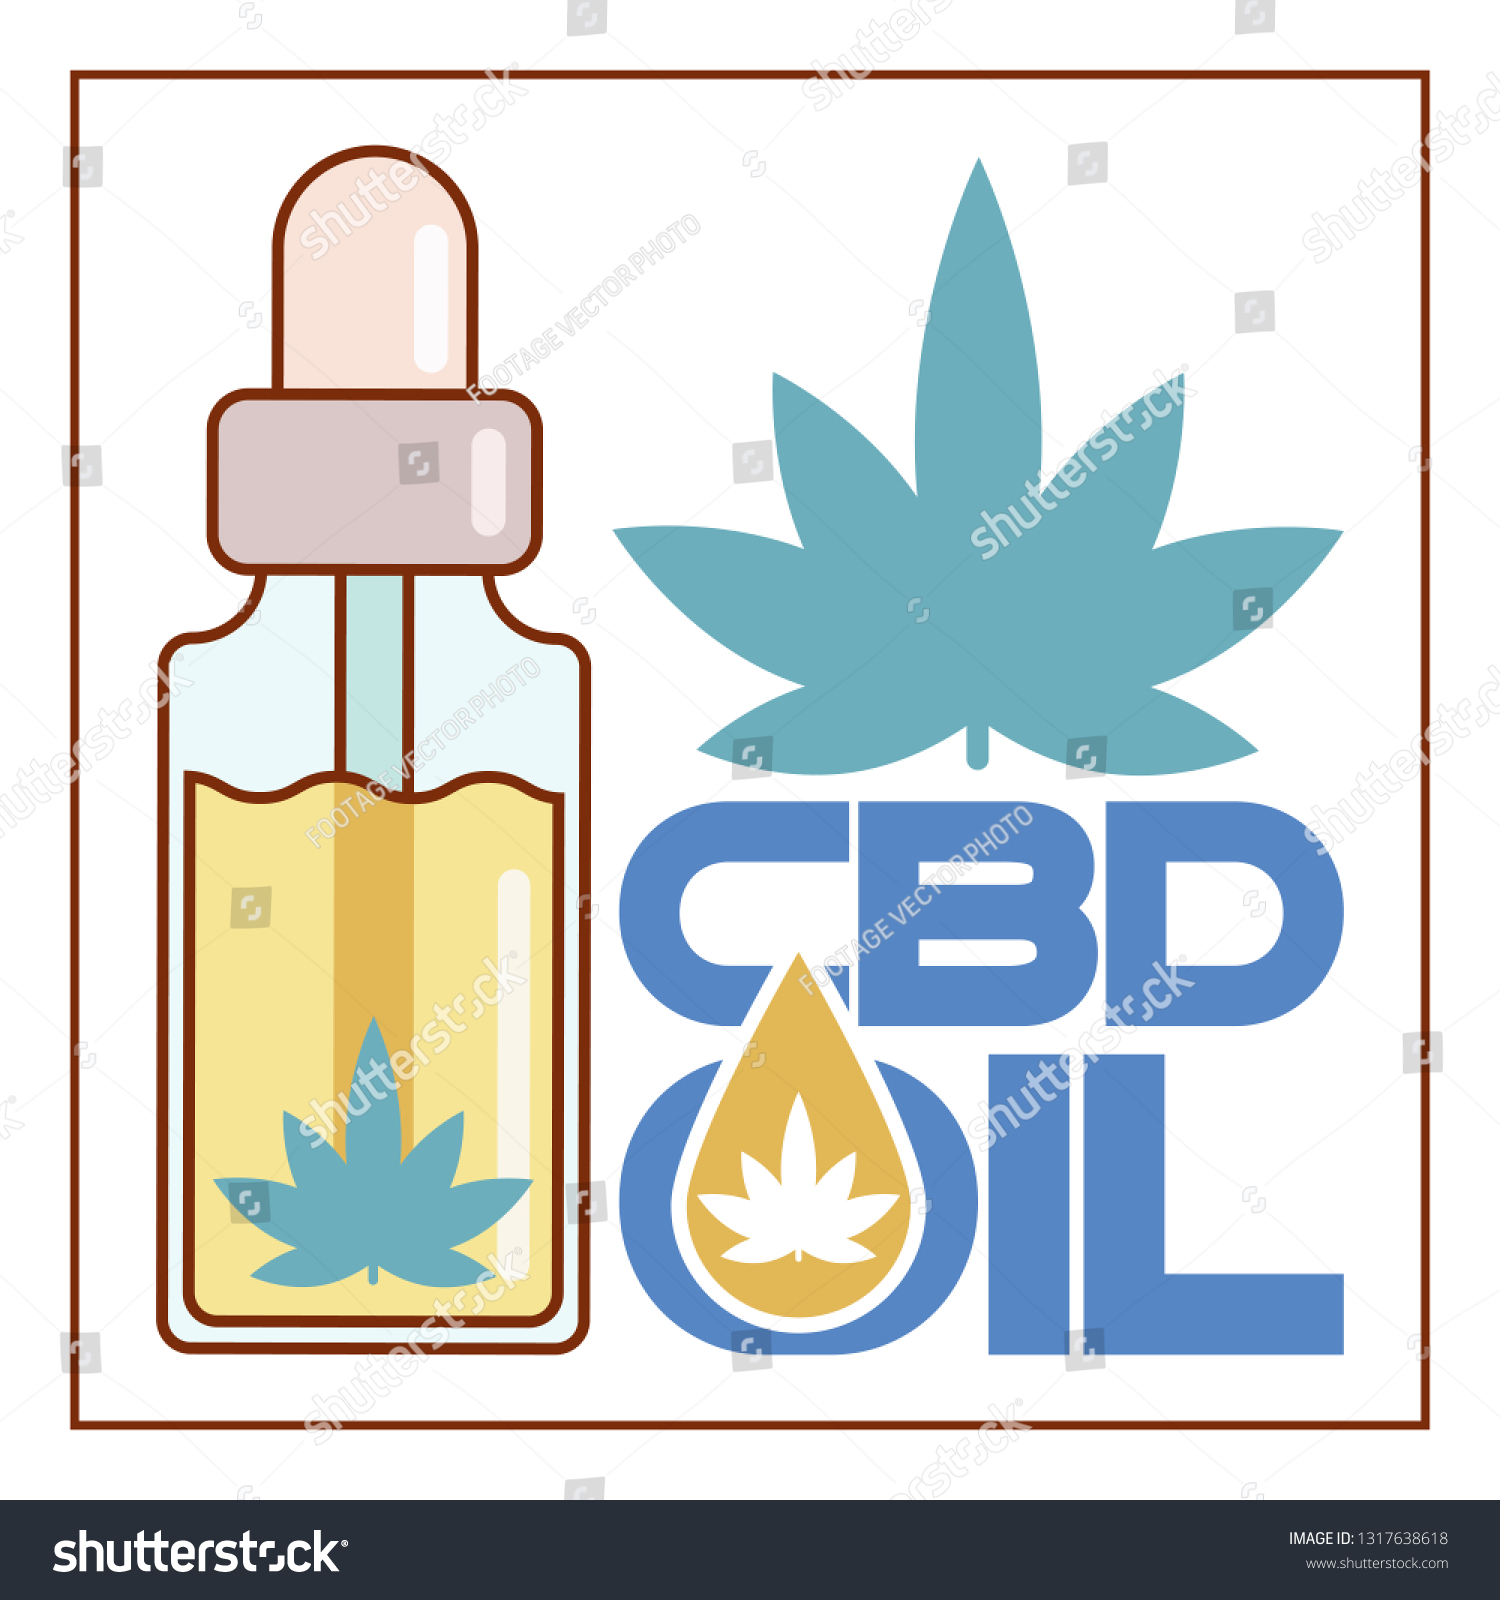 CBD Oil Poster Stock Vector (Royalty Free) 1317638618 - Shutterstock